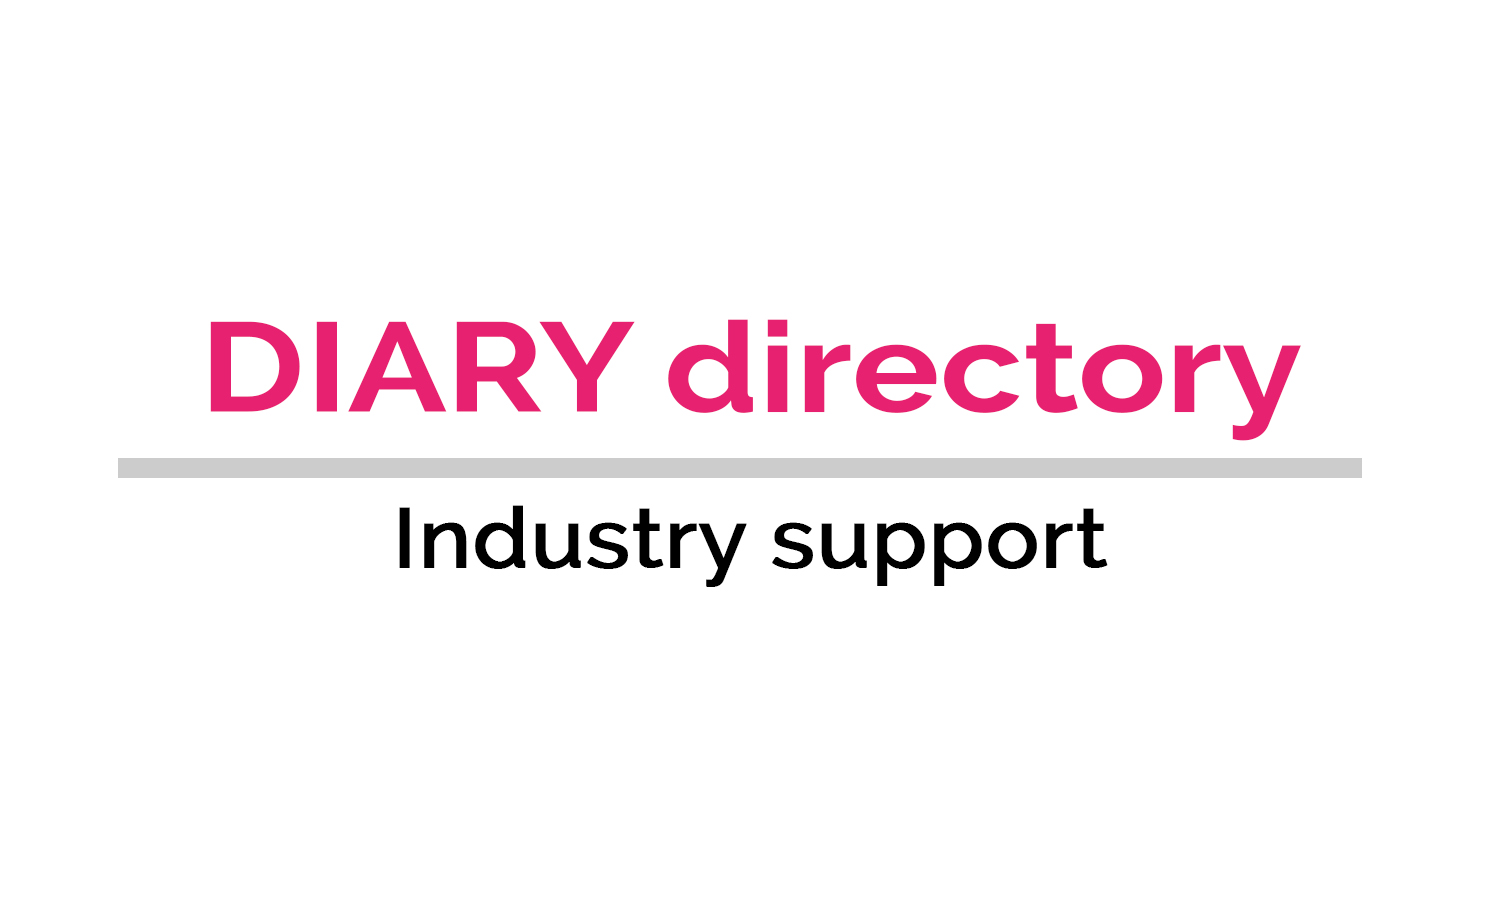 DIARY directory Industry Support